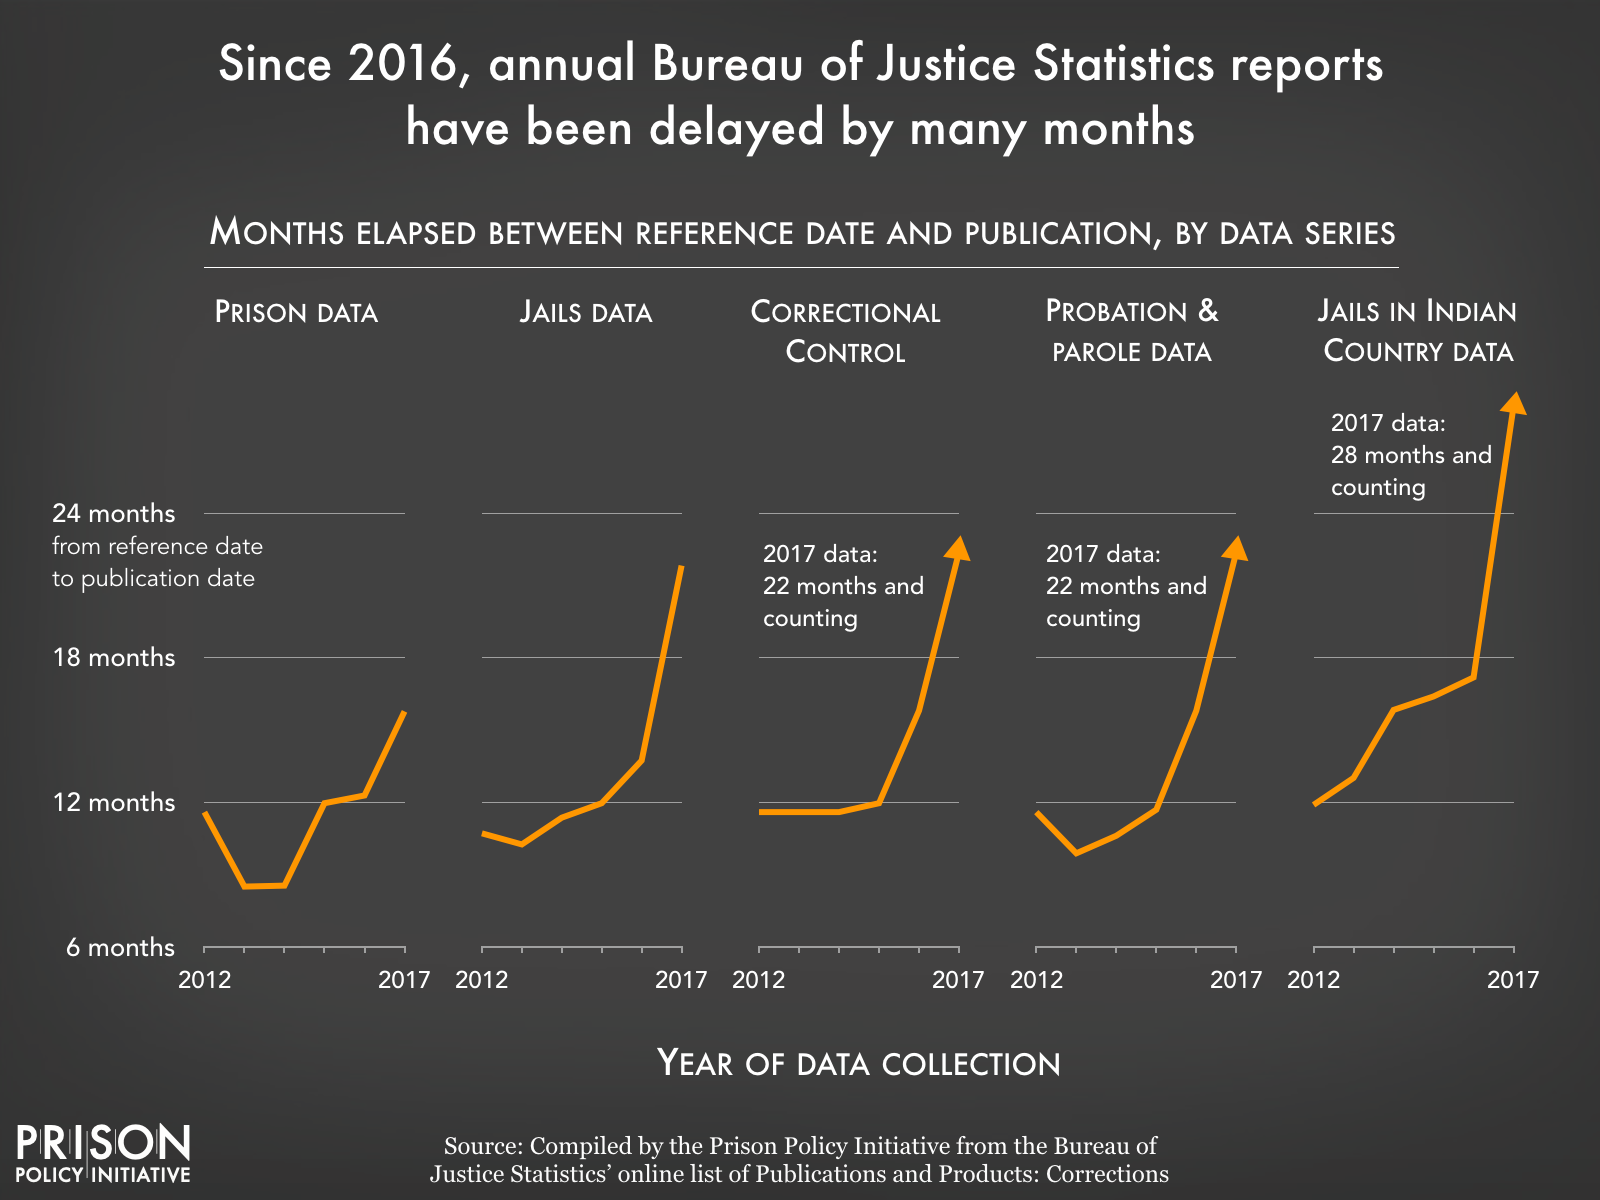 Graph showing that since 2016, BJS data reports have been delayed by many months.